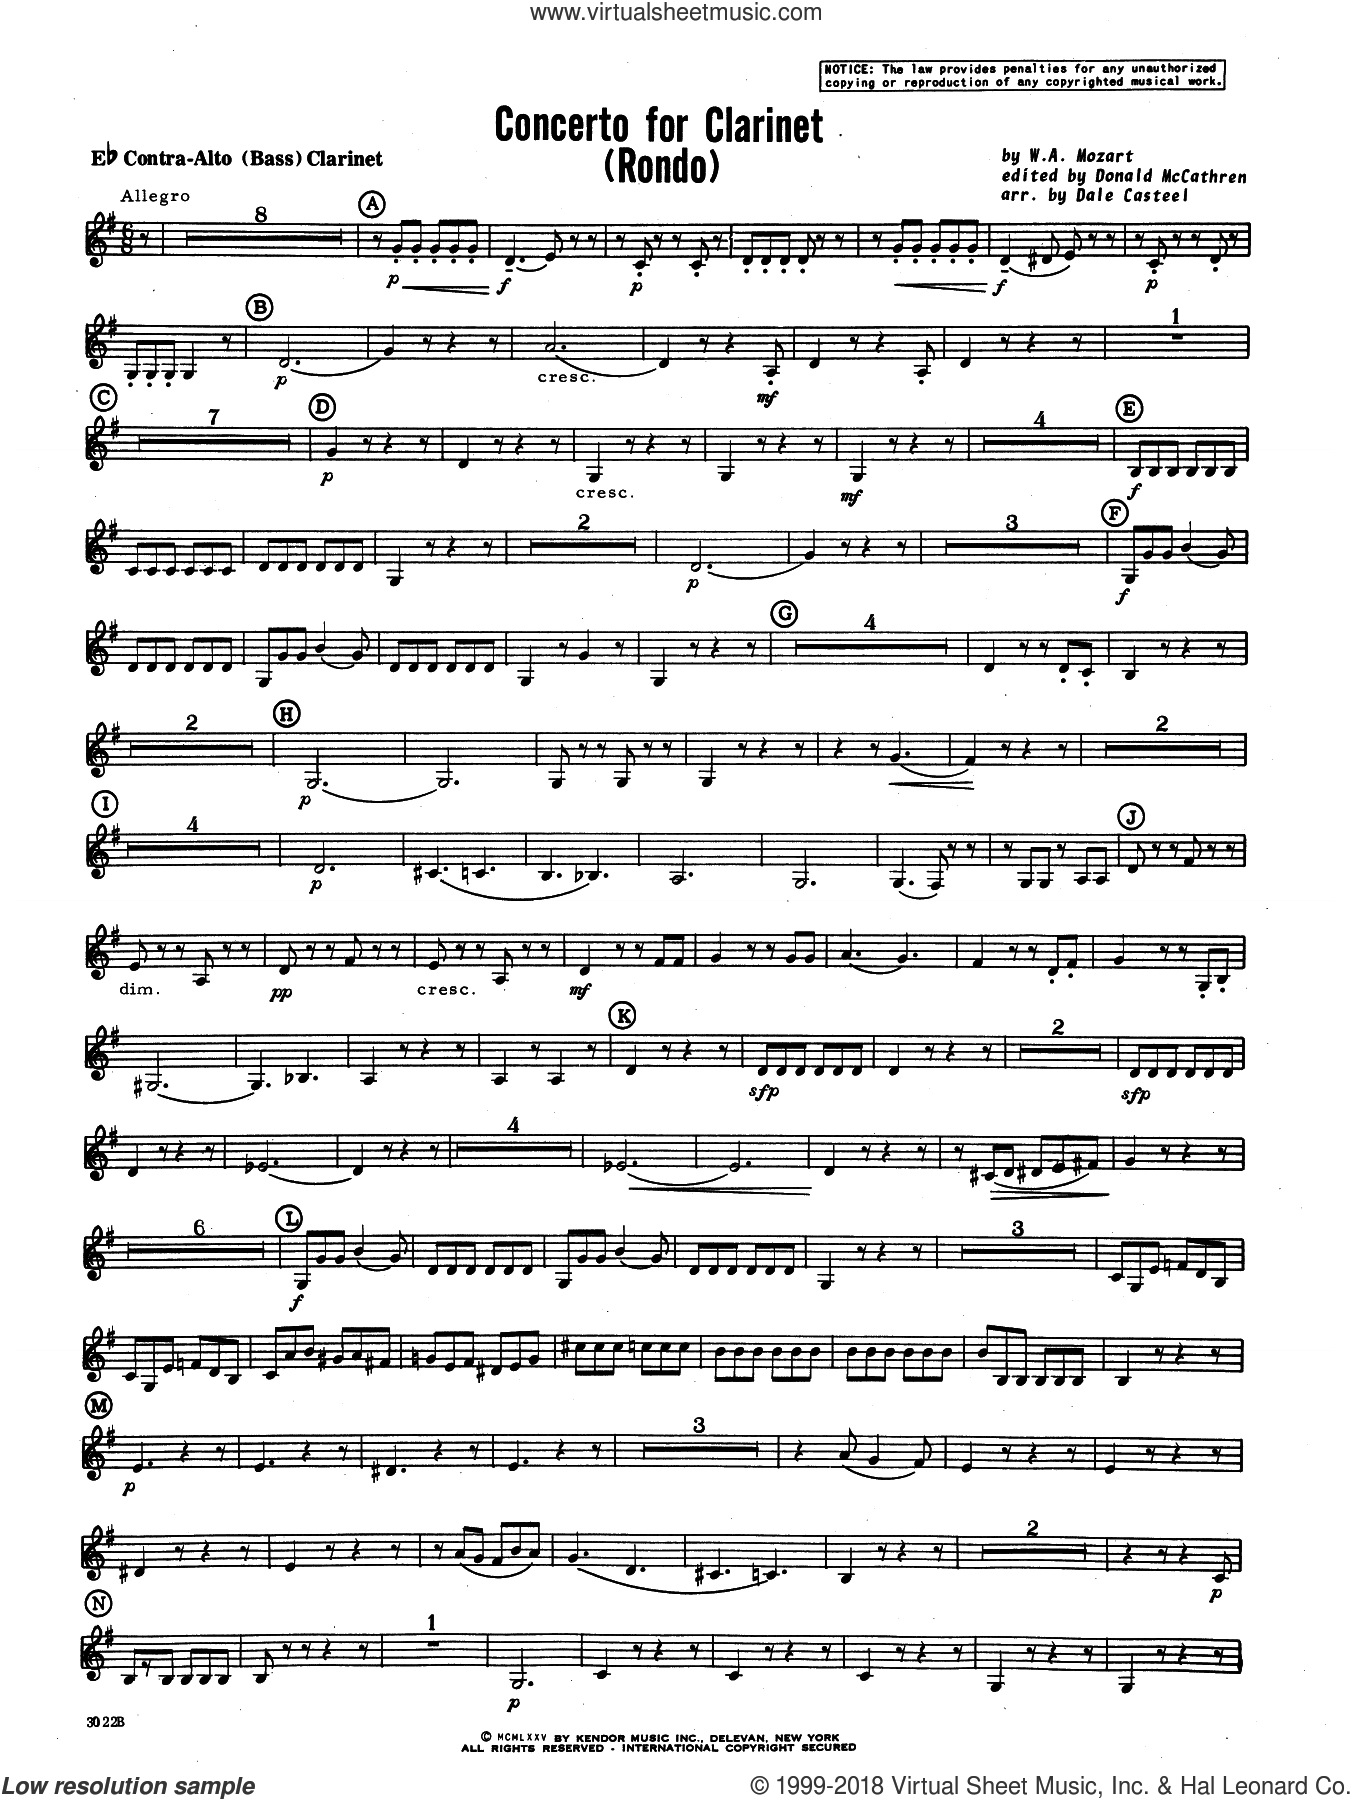 Concerto For Clarinet, rondo (3rd movement) sheet music for concert band (k.622) by Wolfgang Amadeus Mozart and Donald McCathren and Dale Casteel, classical score, intermediate skill level